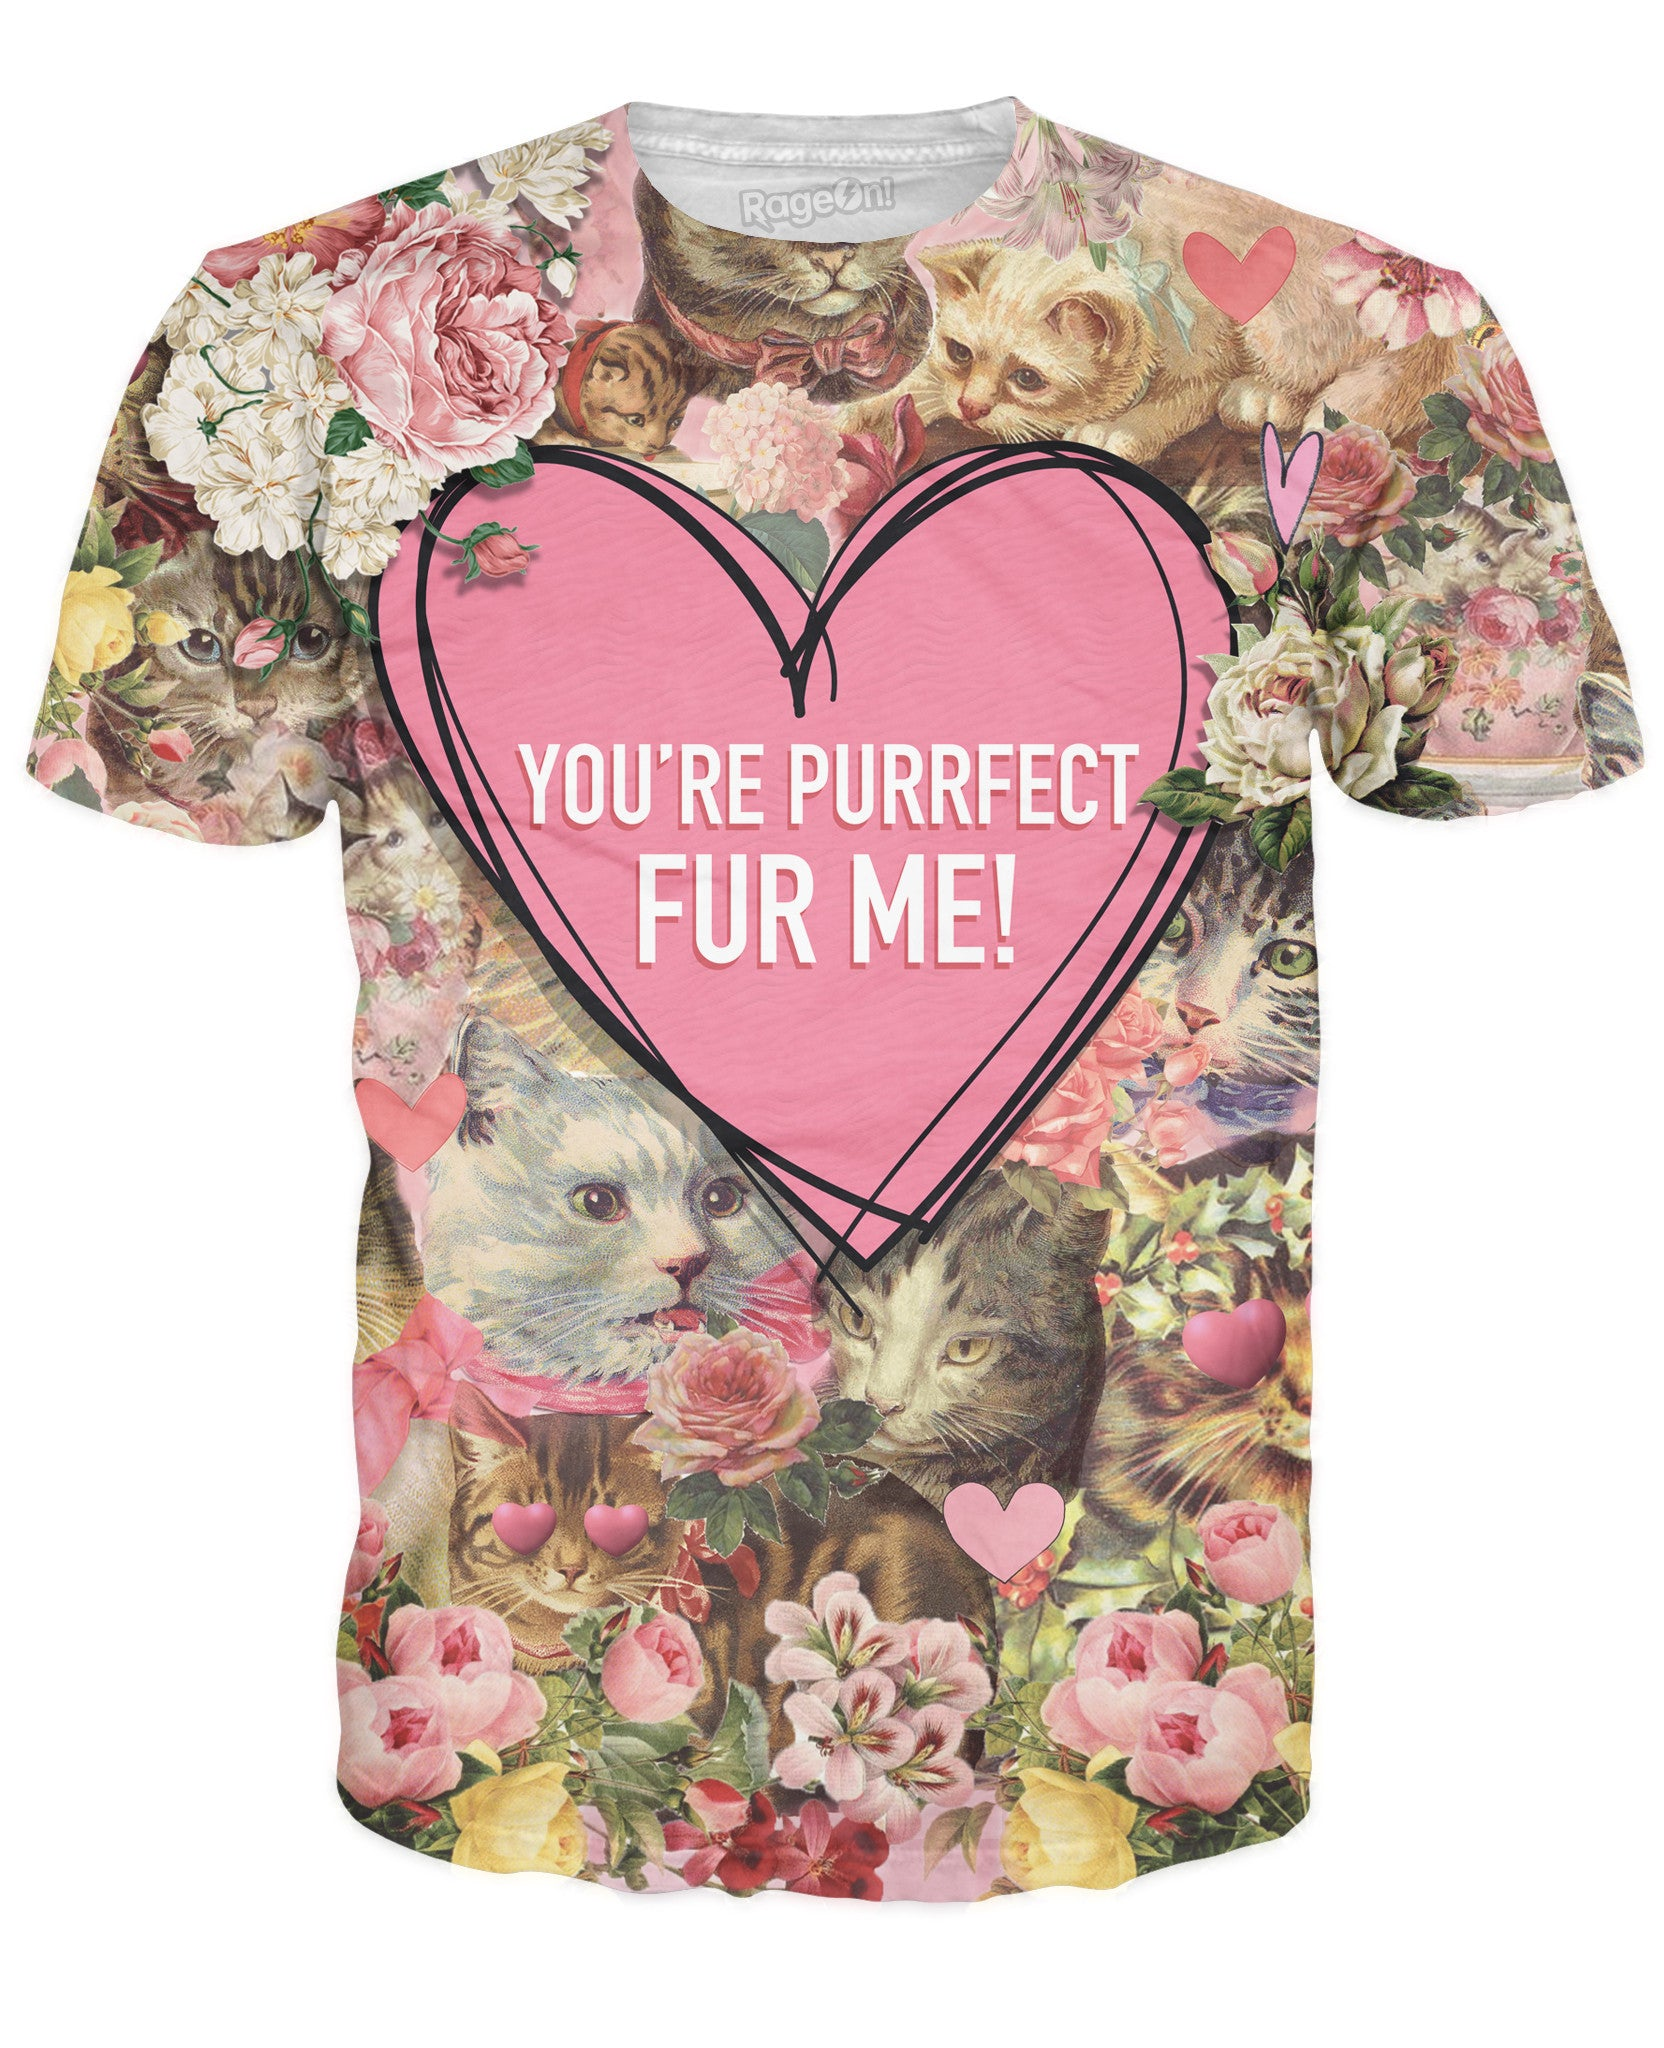 You're Purrfect Fur Me T-Shirt